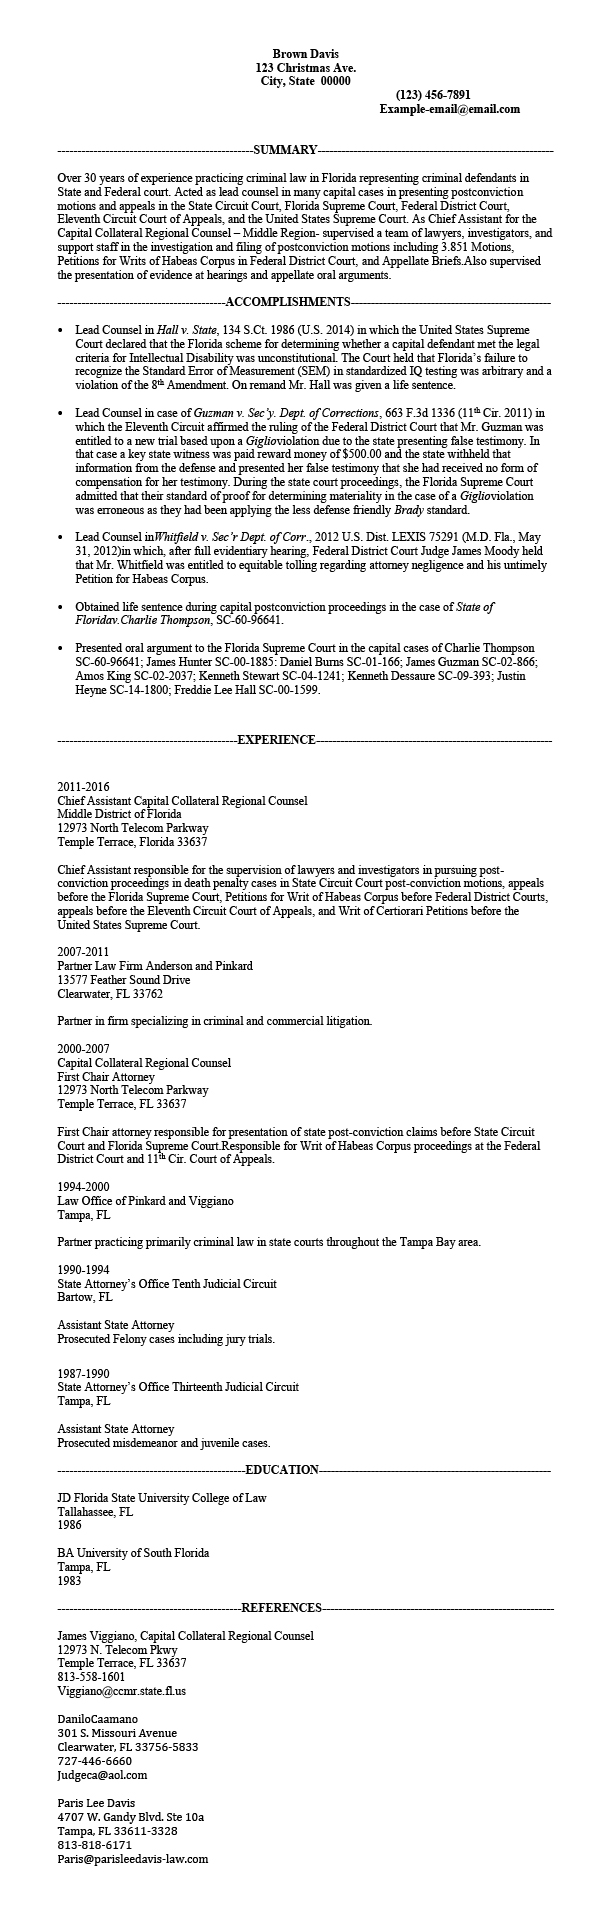 criminal law attorney resume samples templates tips attorneyresume com